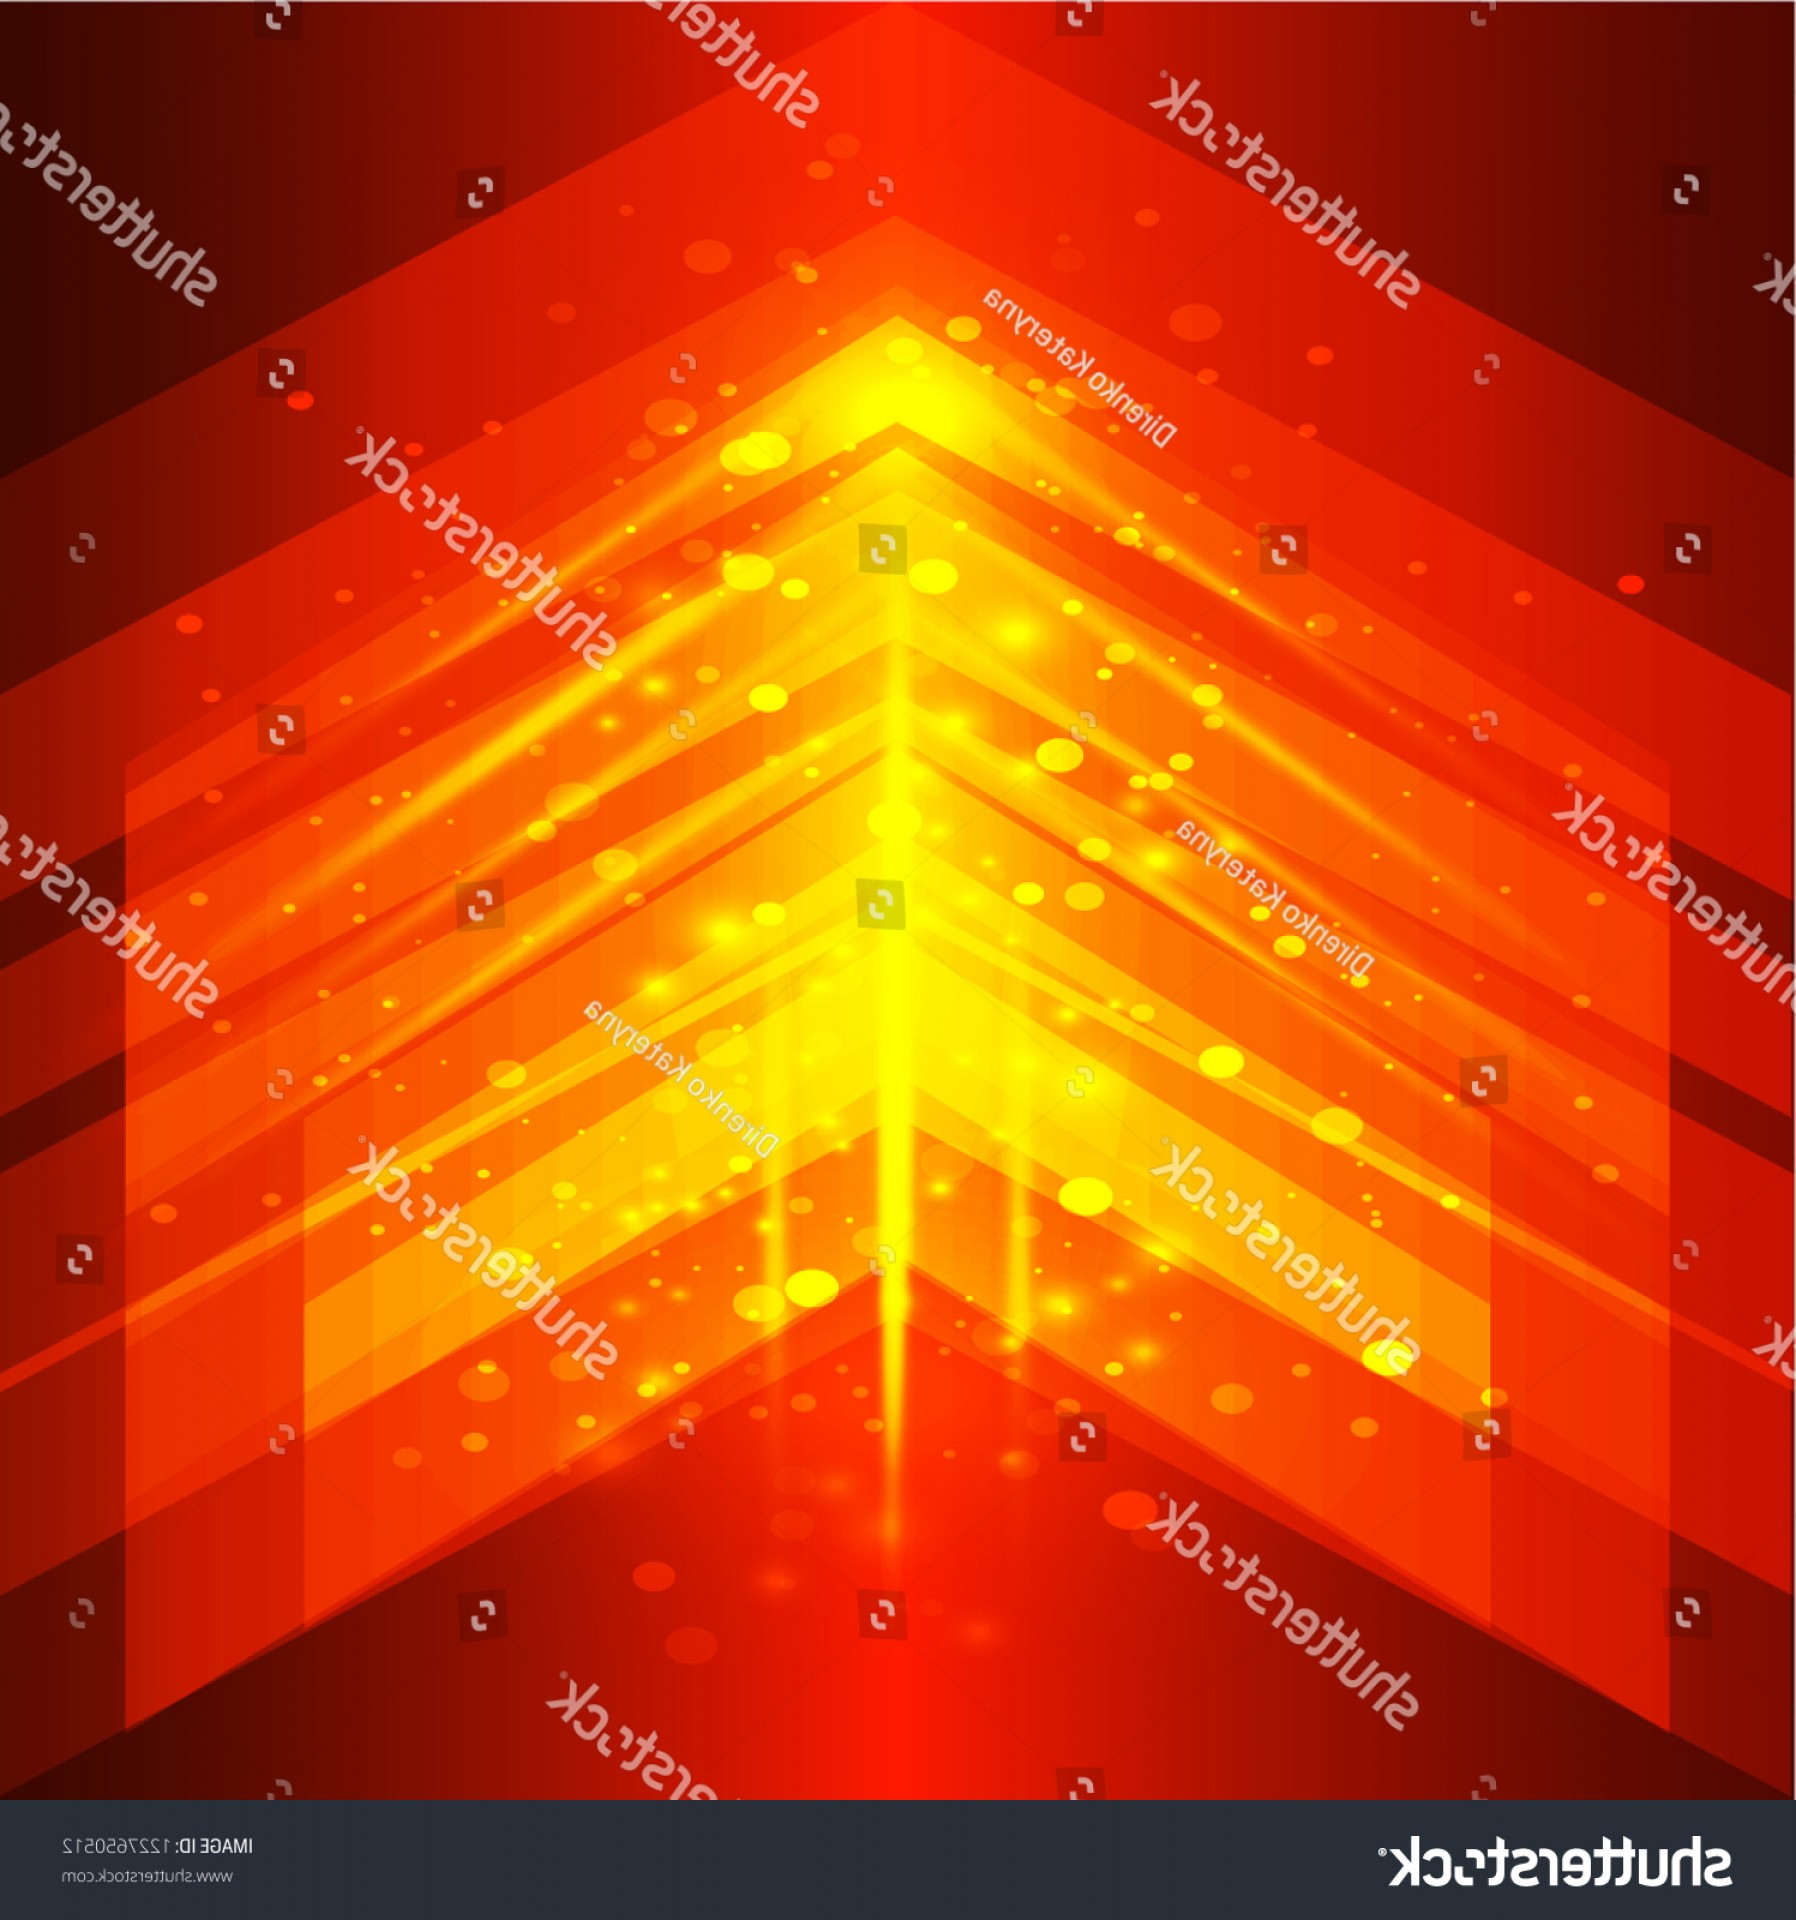 YouTube RedVector Real Life: Red Vector Digital Technology Concept Abstract